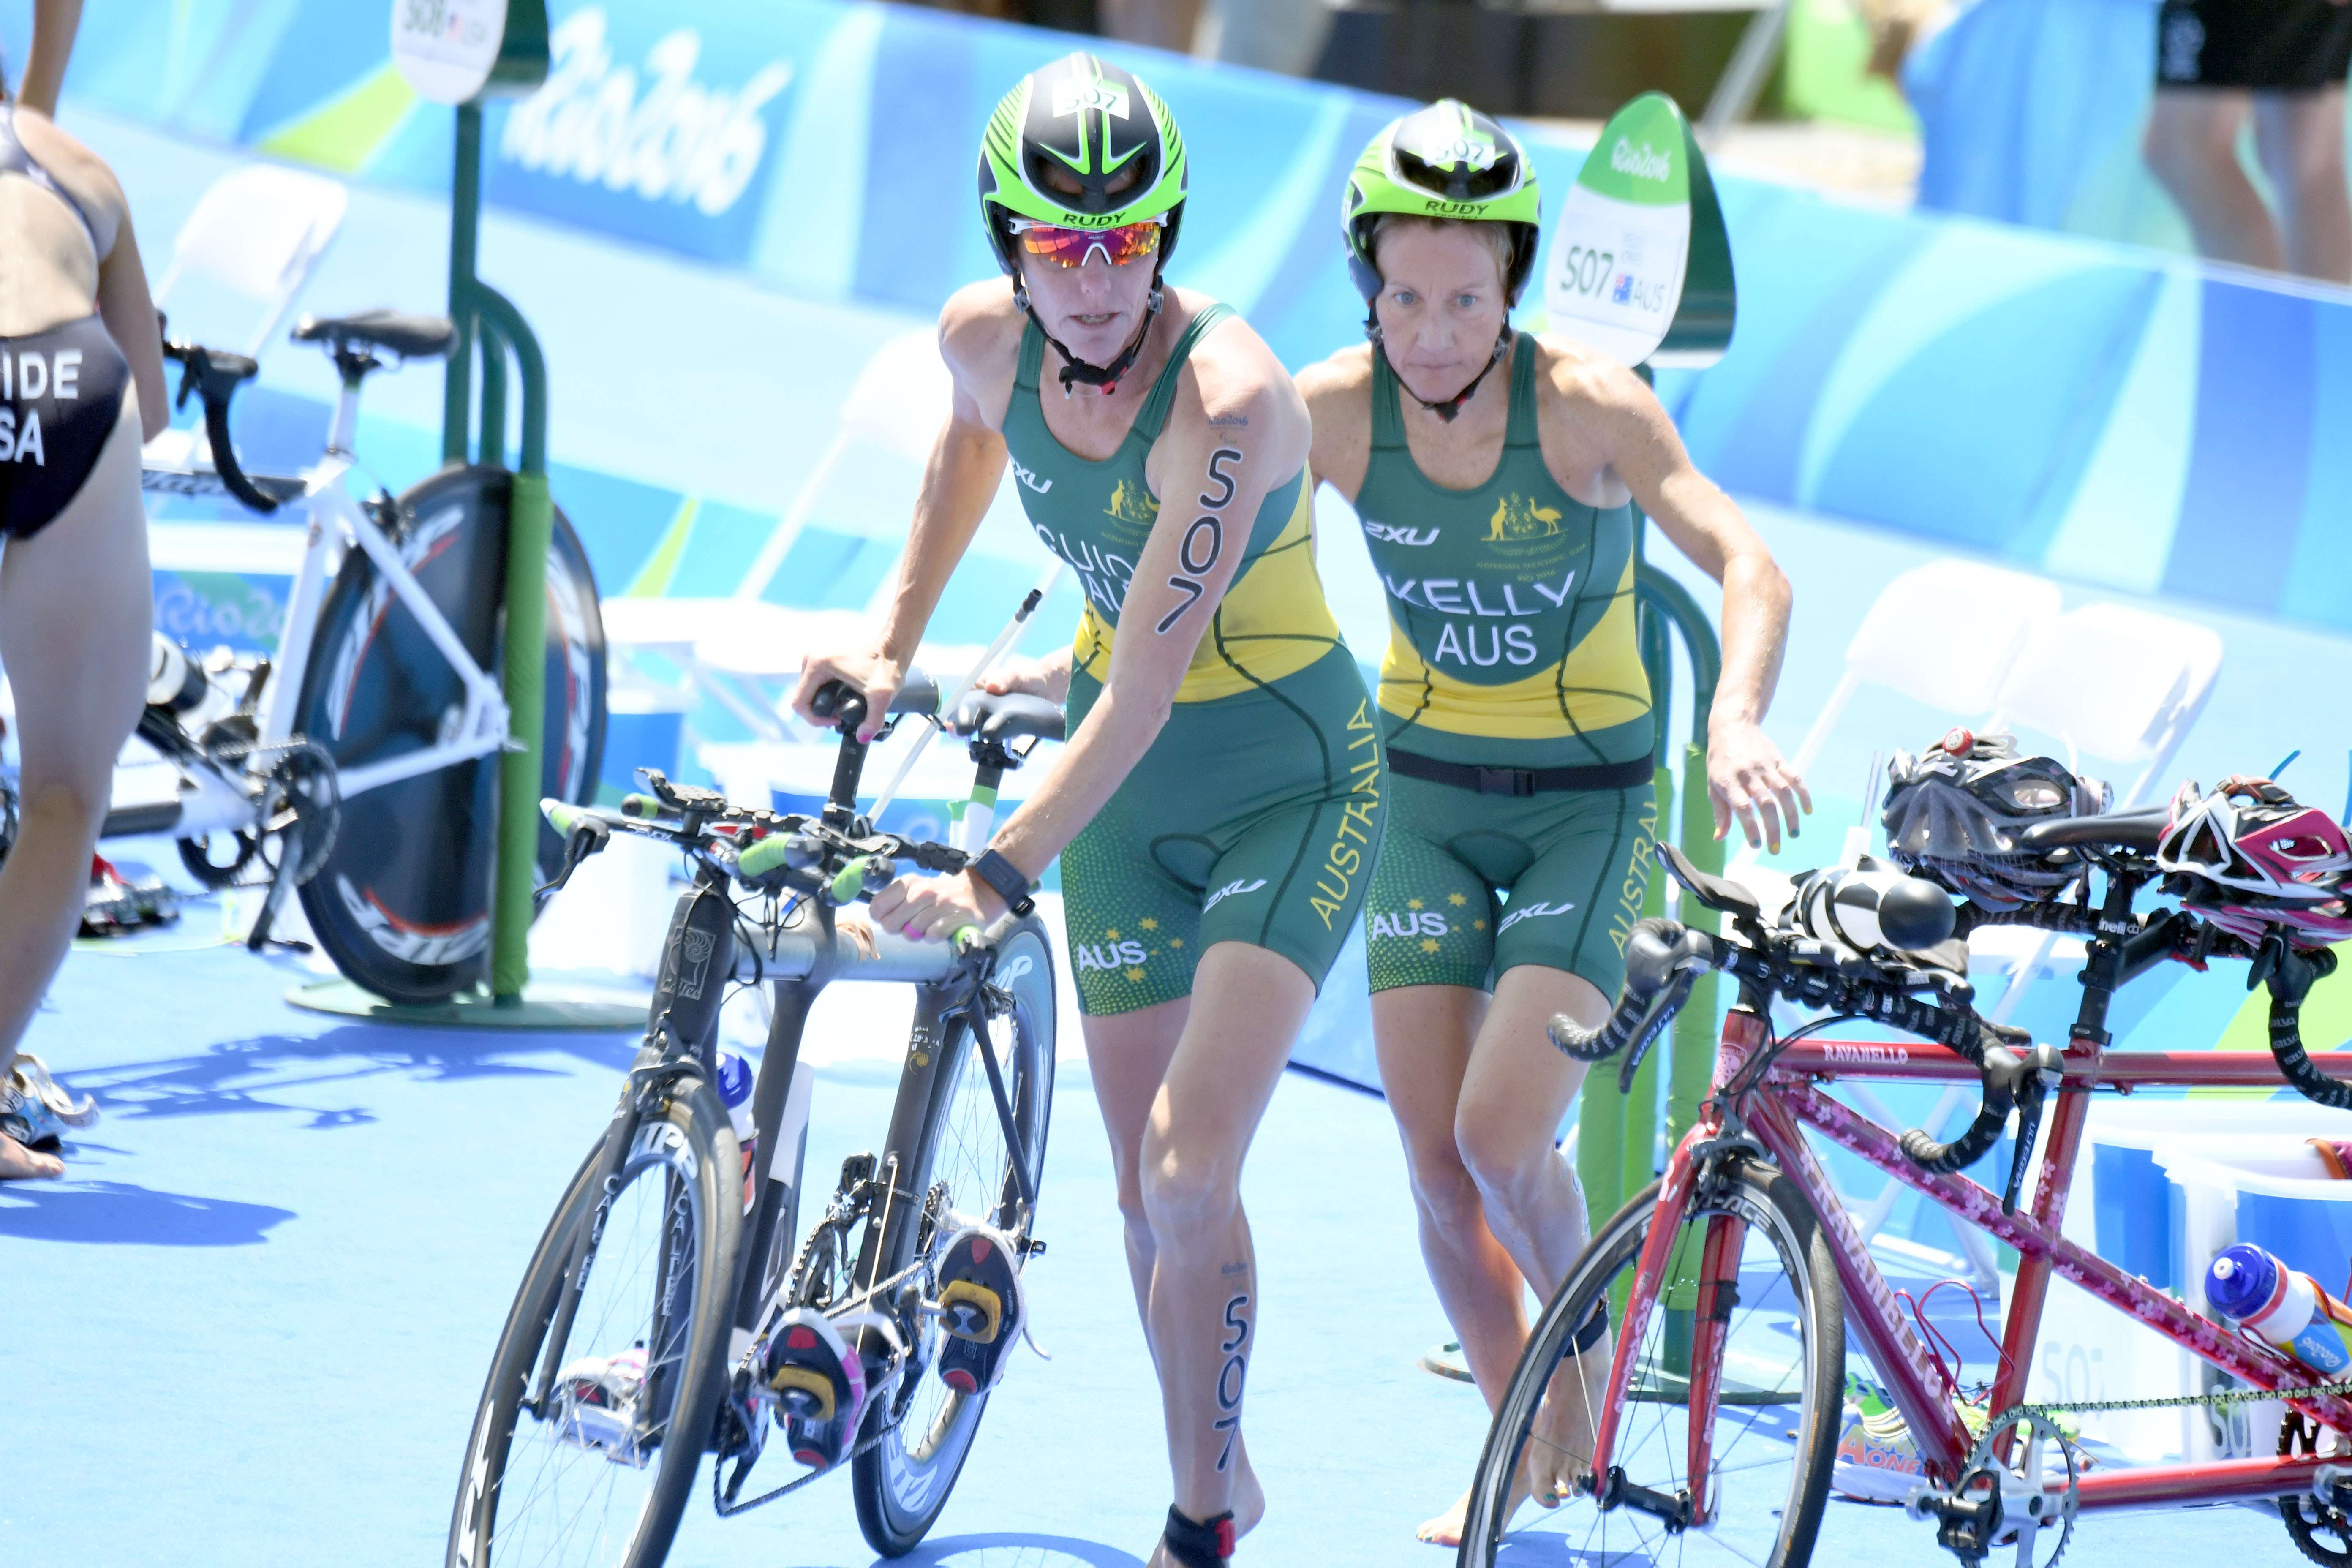 Coast triathlon watch starts this weekend at Robina Image